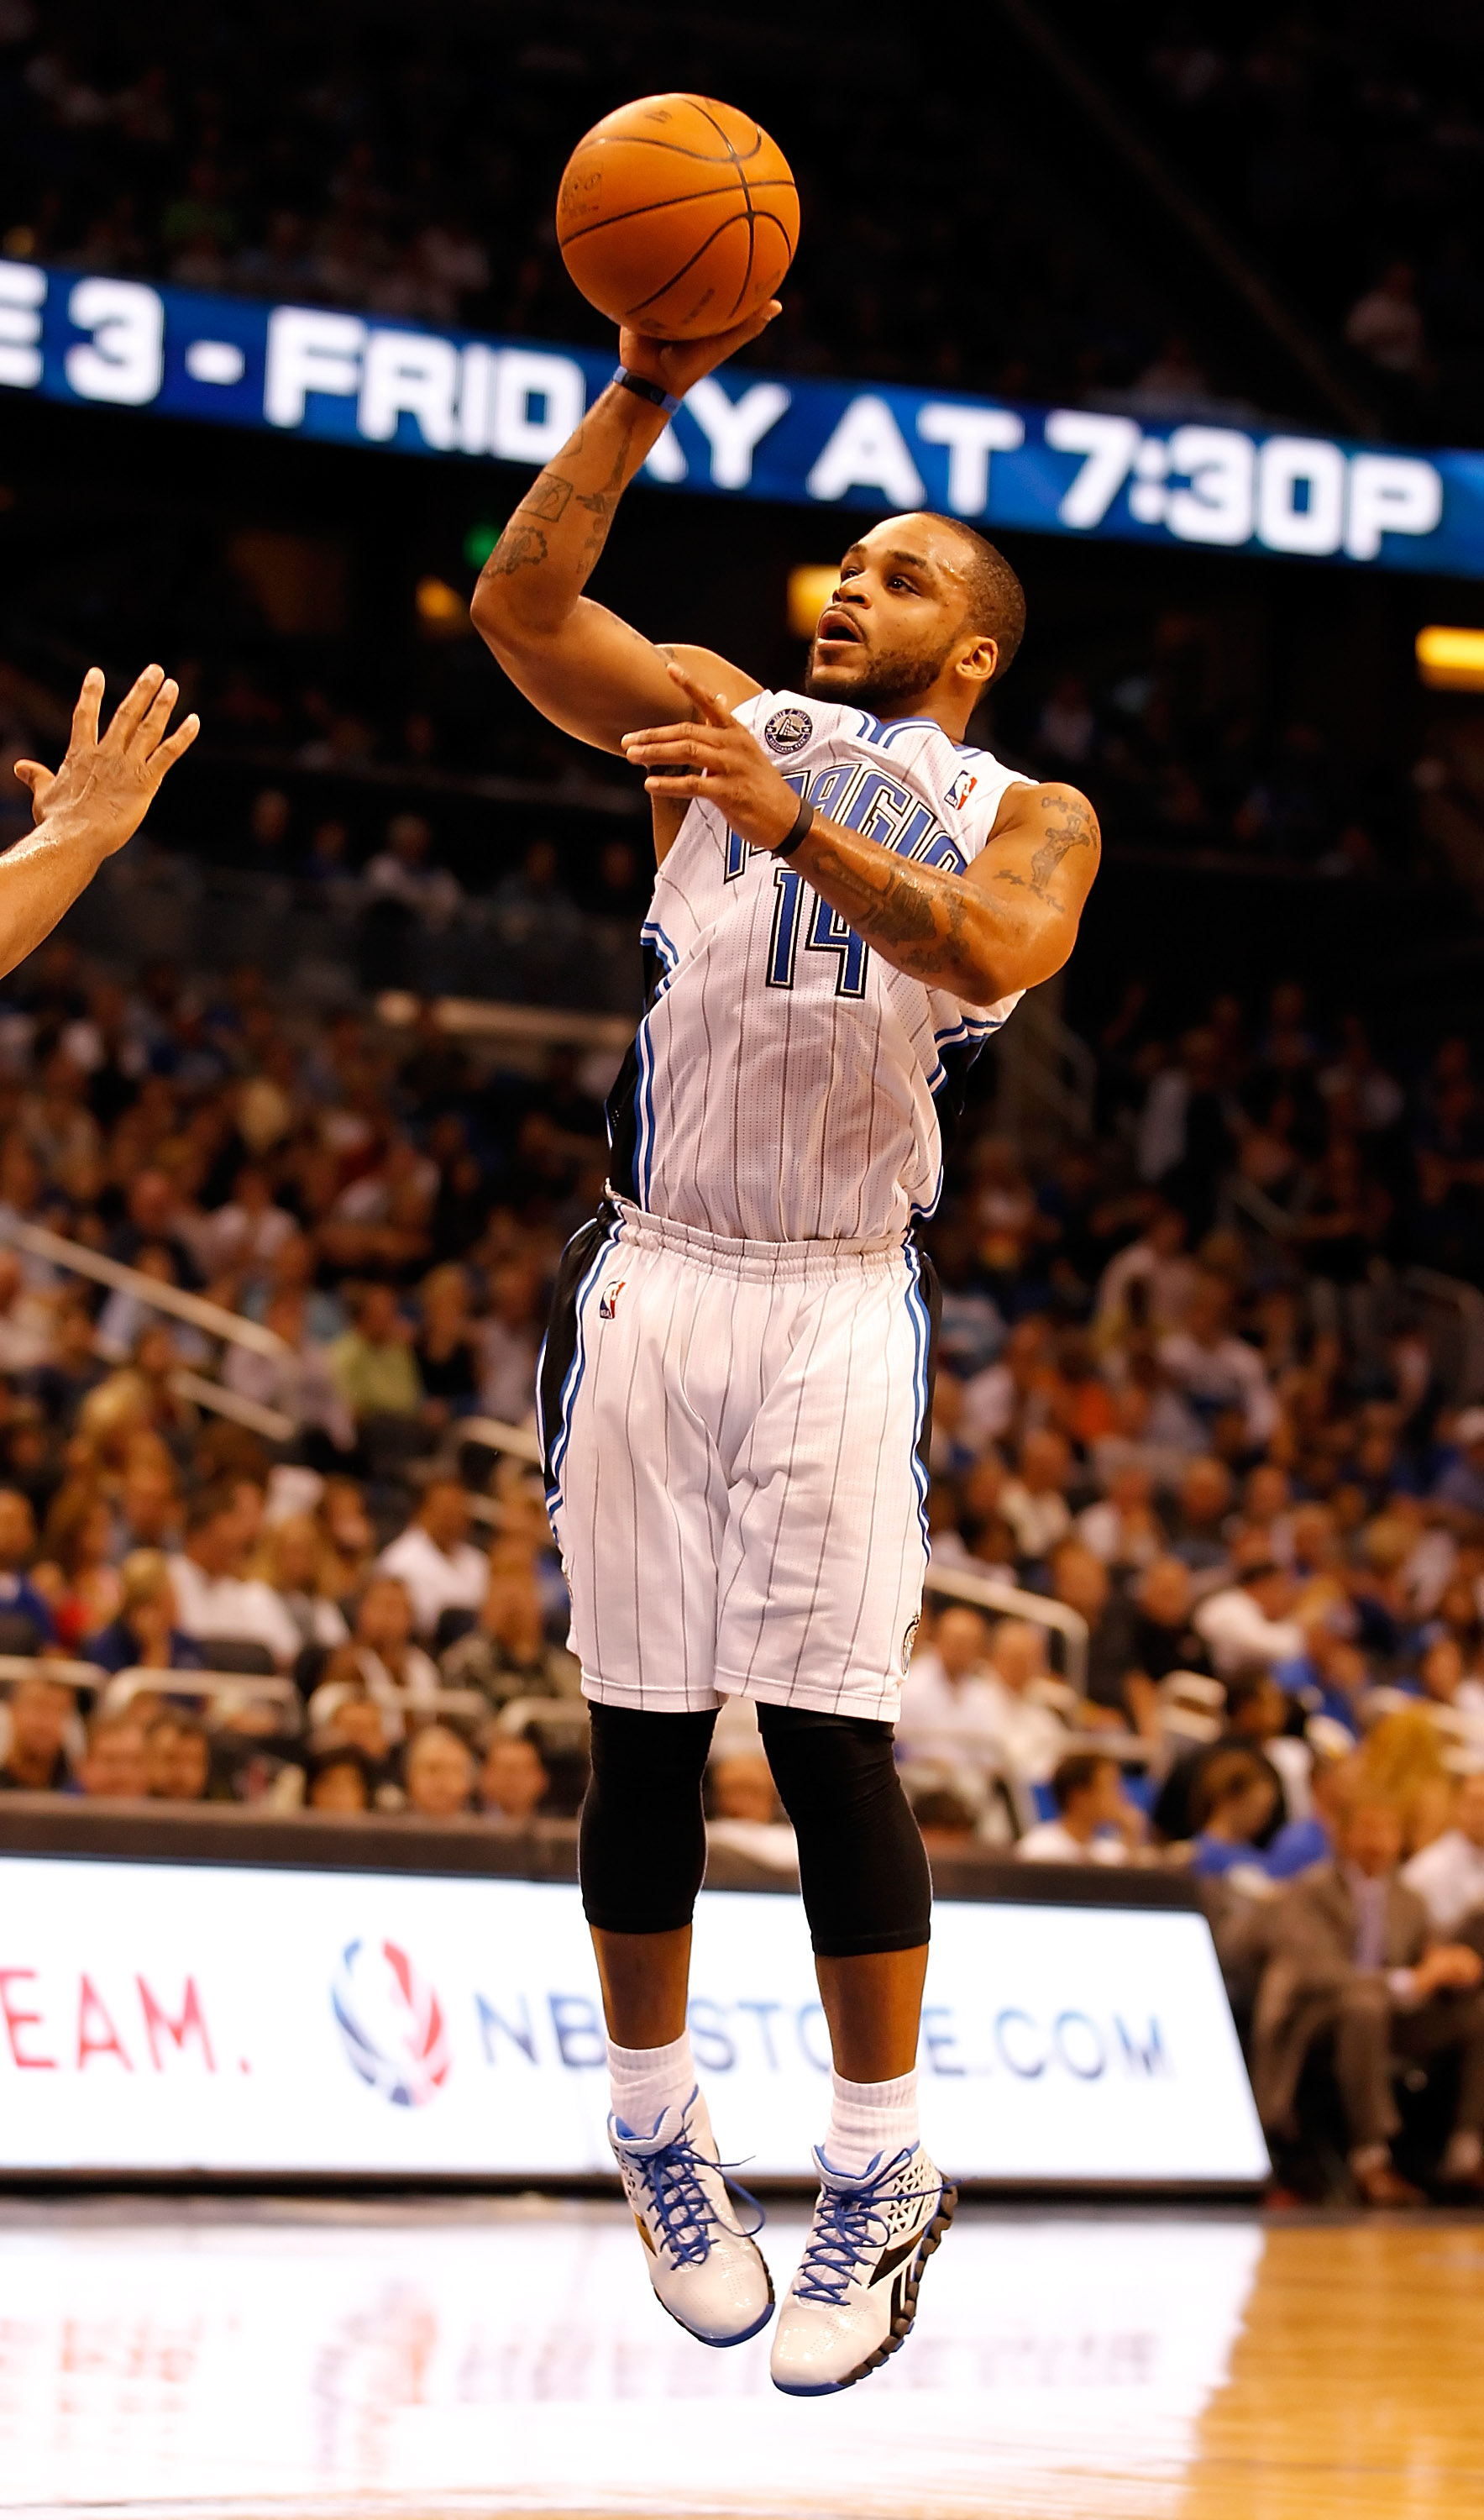 ORLANDO, FL - APRIL 19:  Jameer Nelson #14 of the Orlando Magic shoots against the Atlanta Hawks during Game Two of the Eastern Conference Quarterfinals of the 2011 NBA Playoffs on April 19, 2011 at the Amway Arena in Orlando, Florida.  NOTE TO USER: User